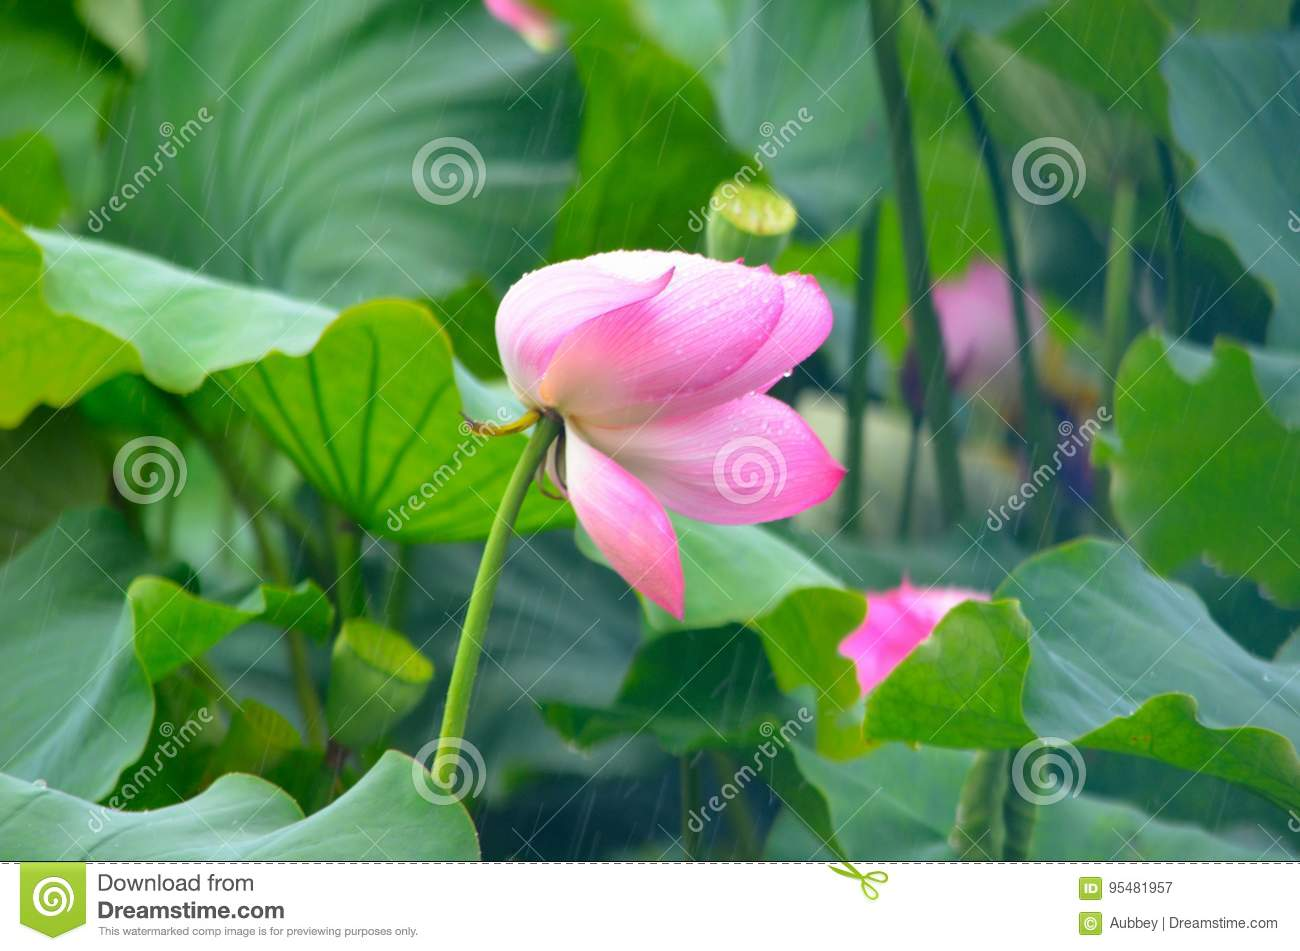 Lotus flower in the rain stock image image of bloom 95481957 lotus flower in the rain izmirmasajfo